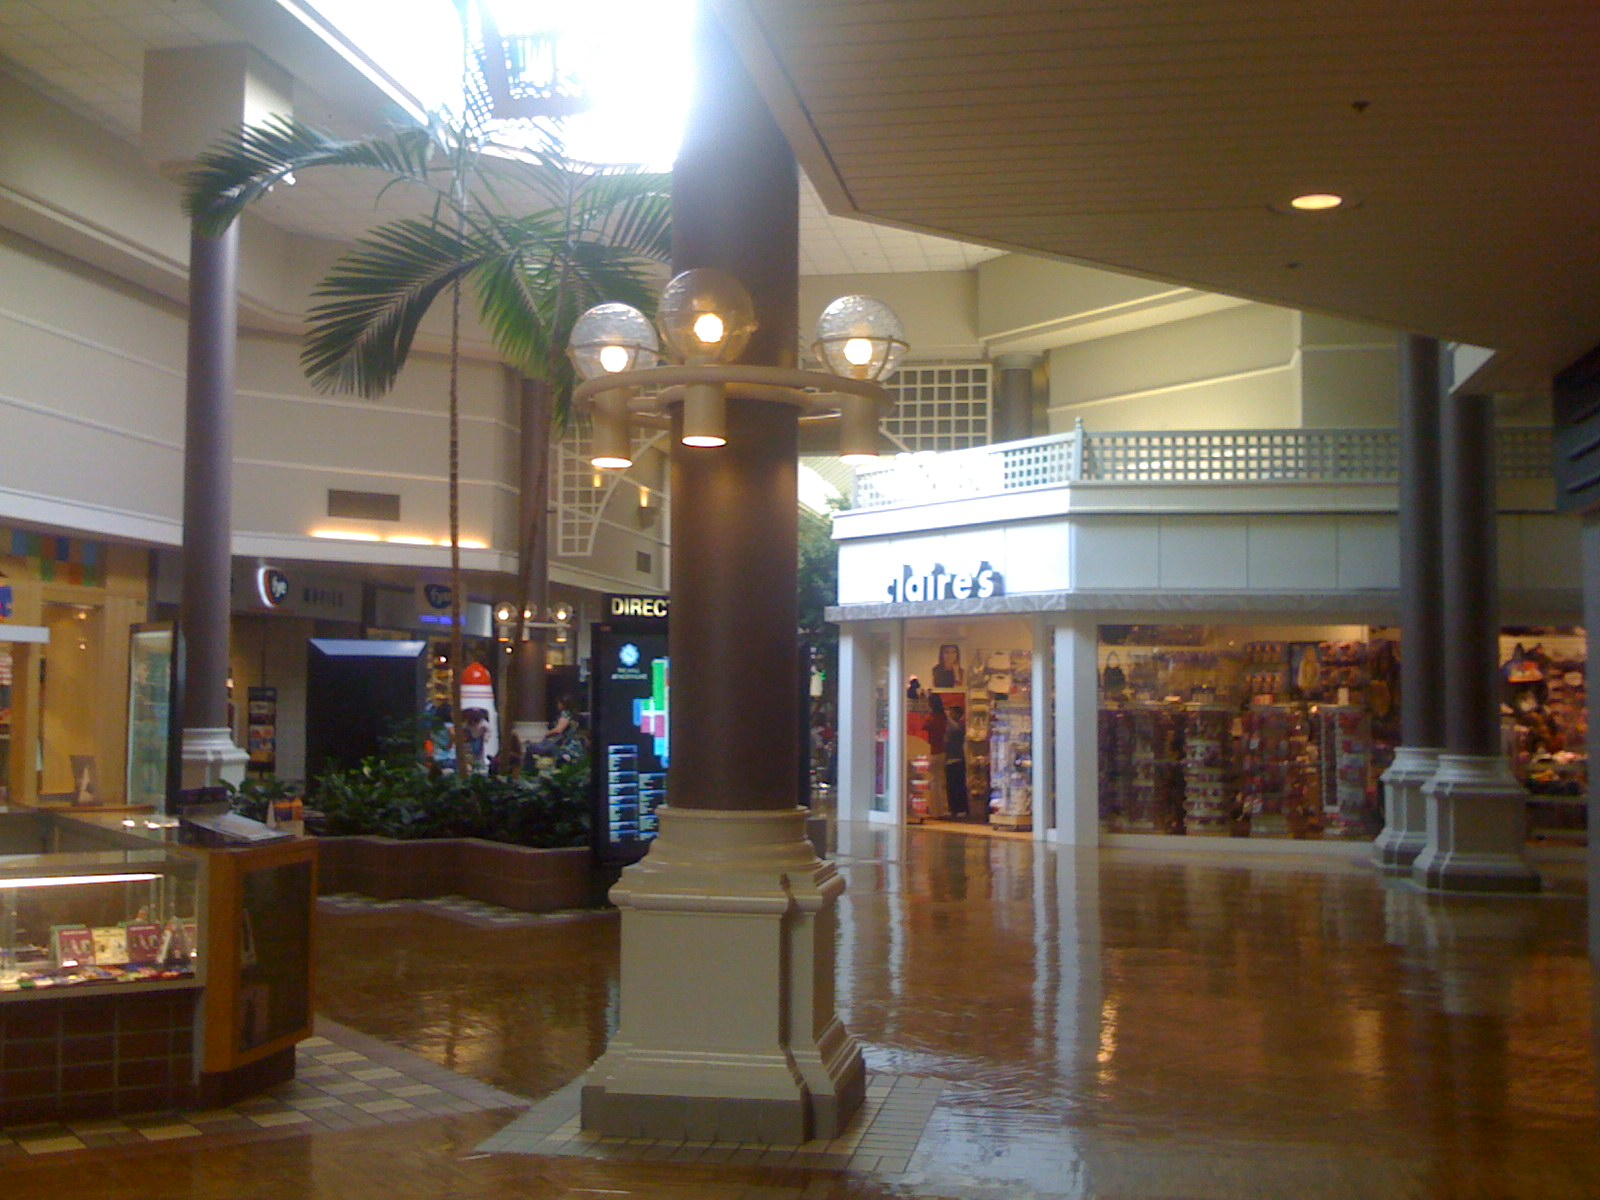 Northgate One Shopping Center (Stores) Address: Northgate Drive San Rafael, CA Phone: A Child's Delight - Northgate One Center; Big 5 Sporting Goods - Northgate One Center; Comcast - Northgate One Center All Malls & Shopping Centers;.